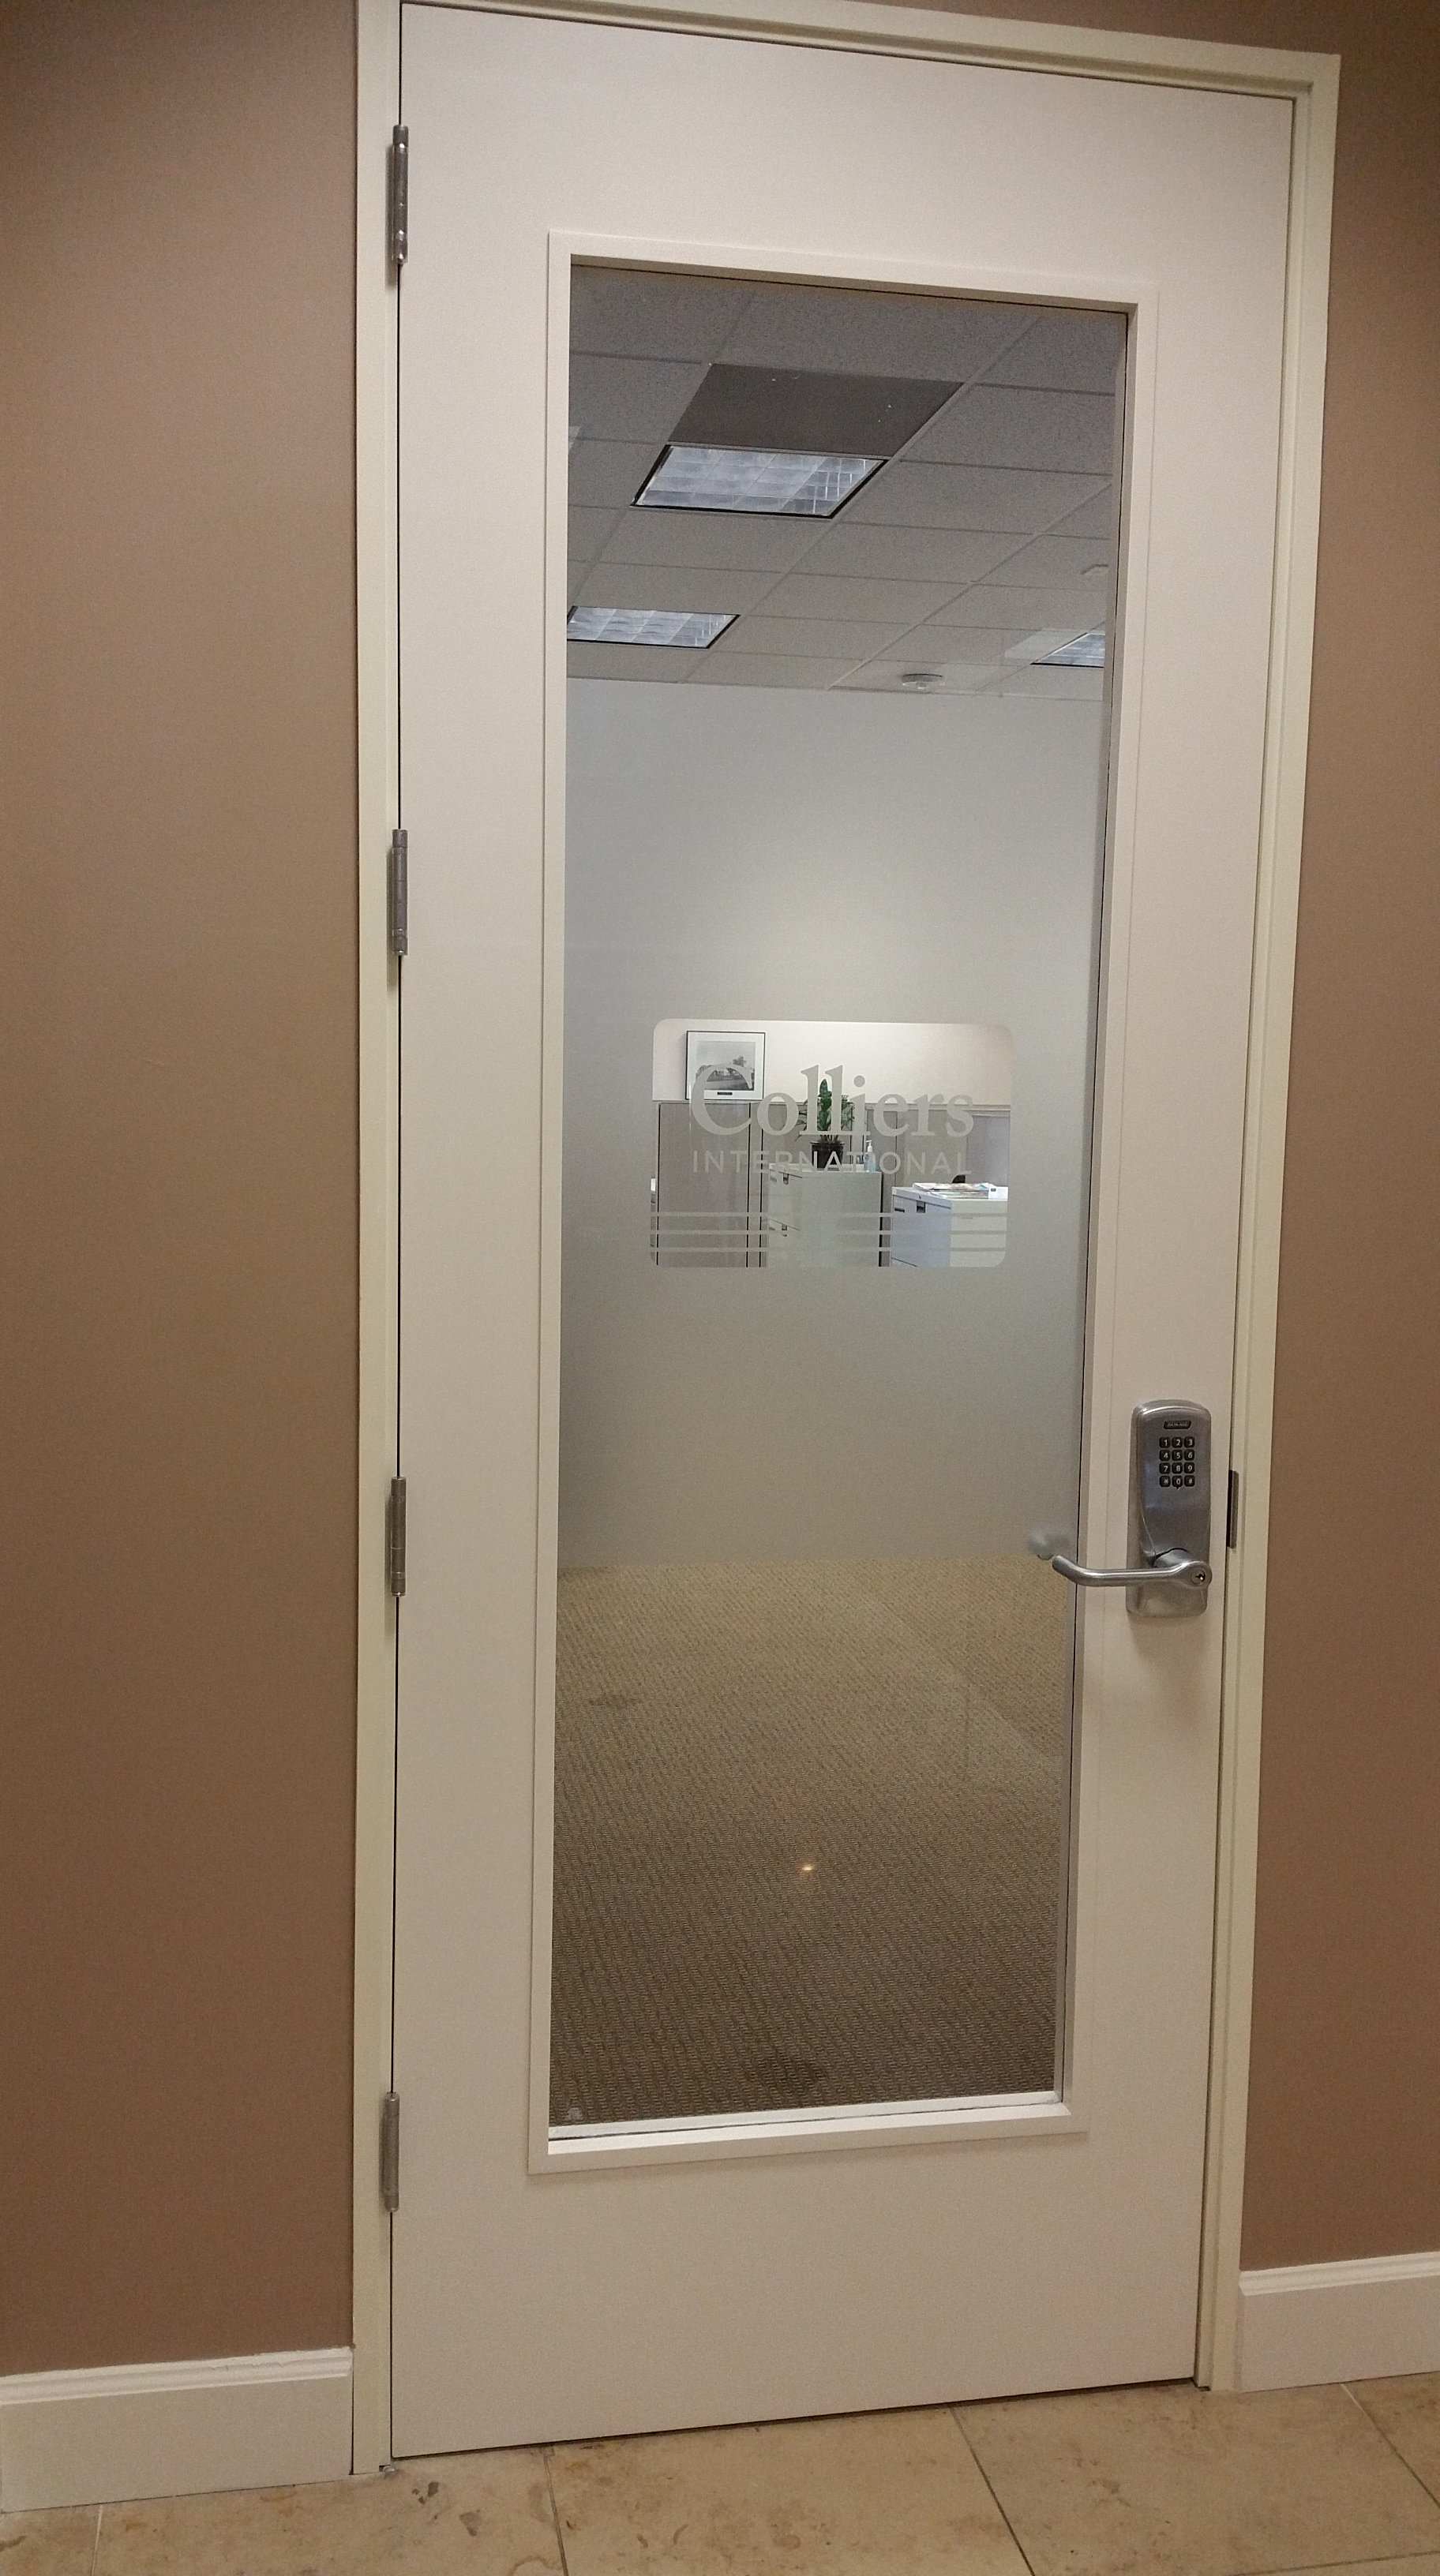 colliers office etch look privacy vinyl